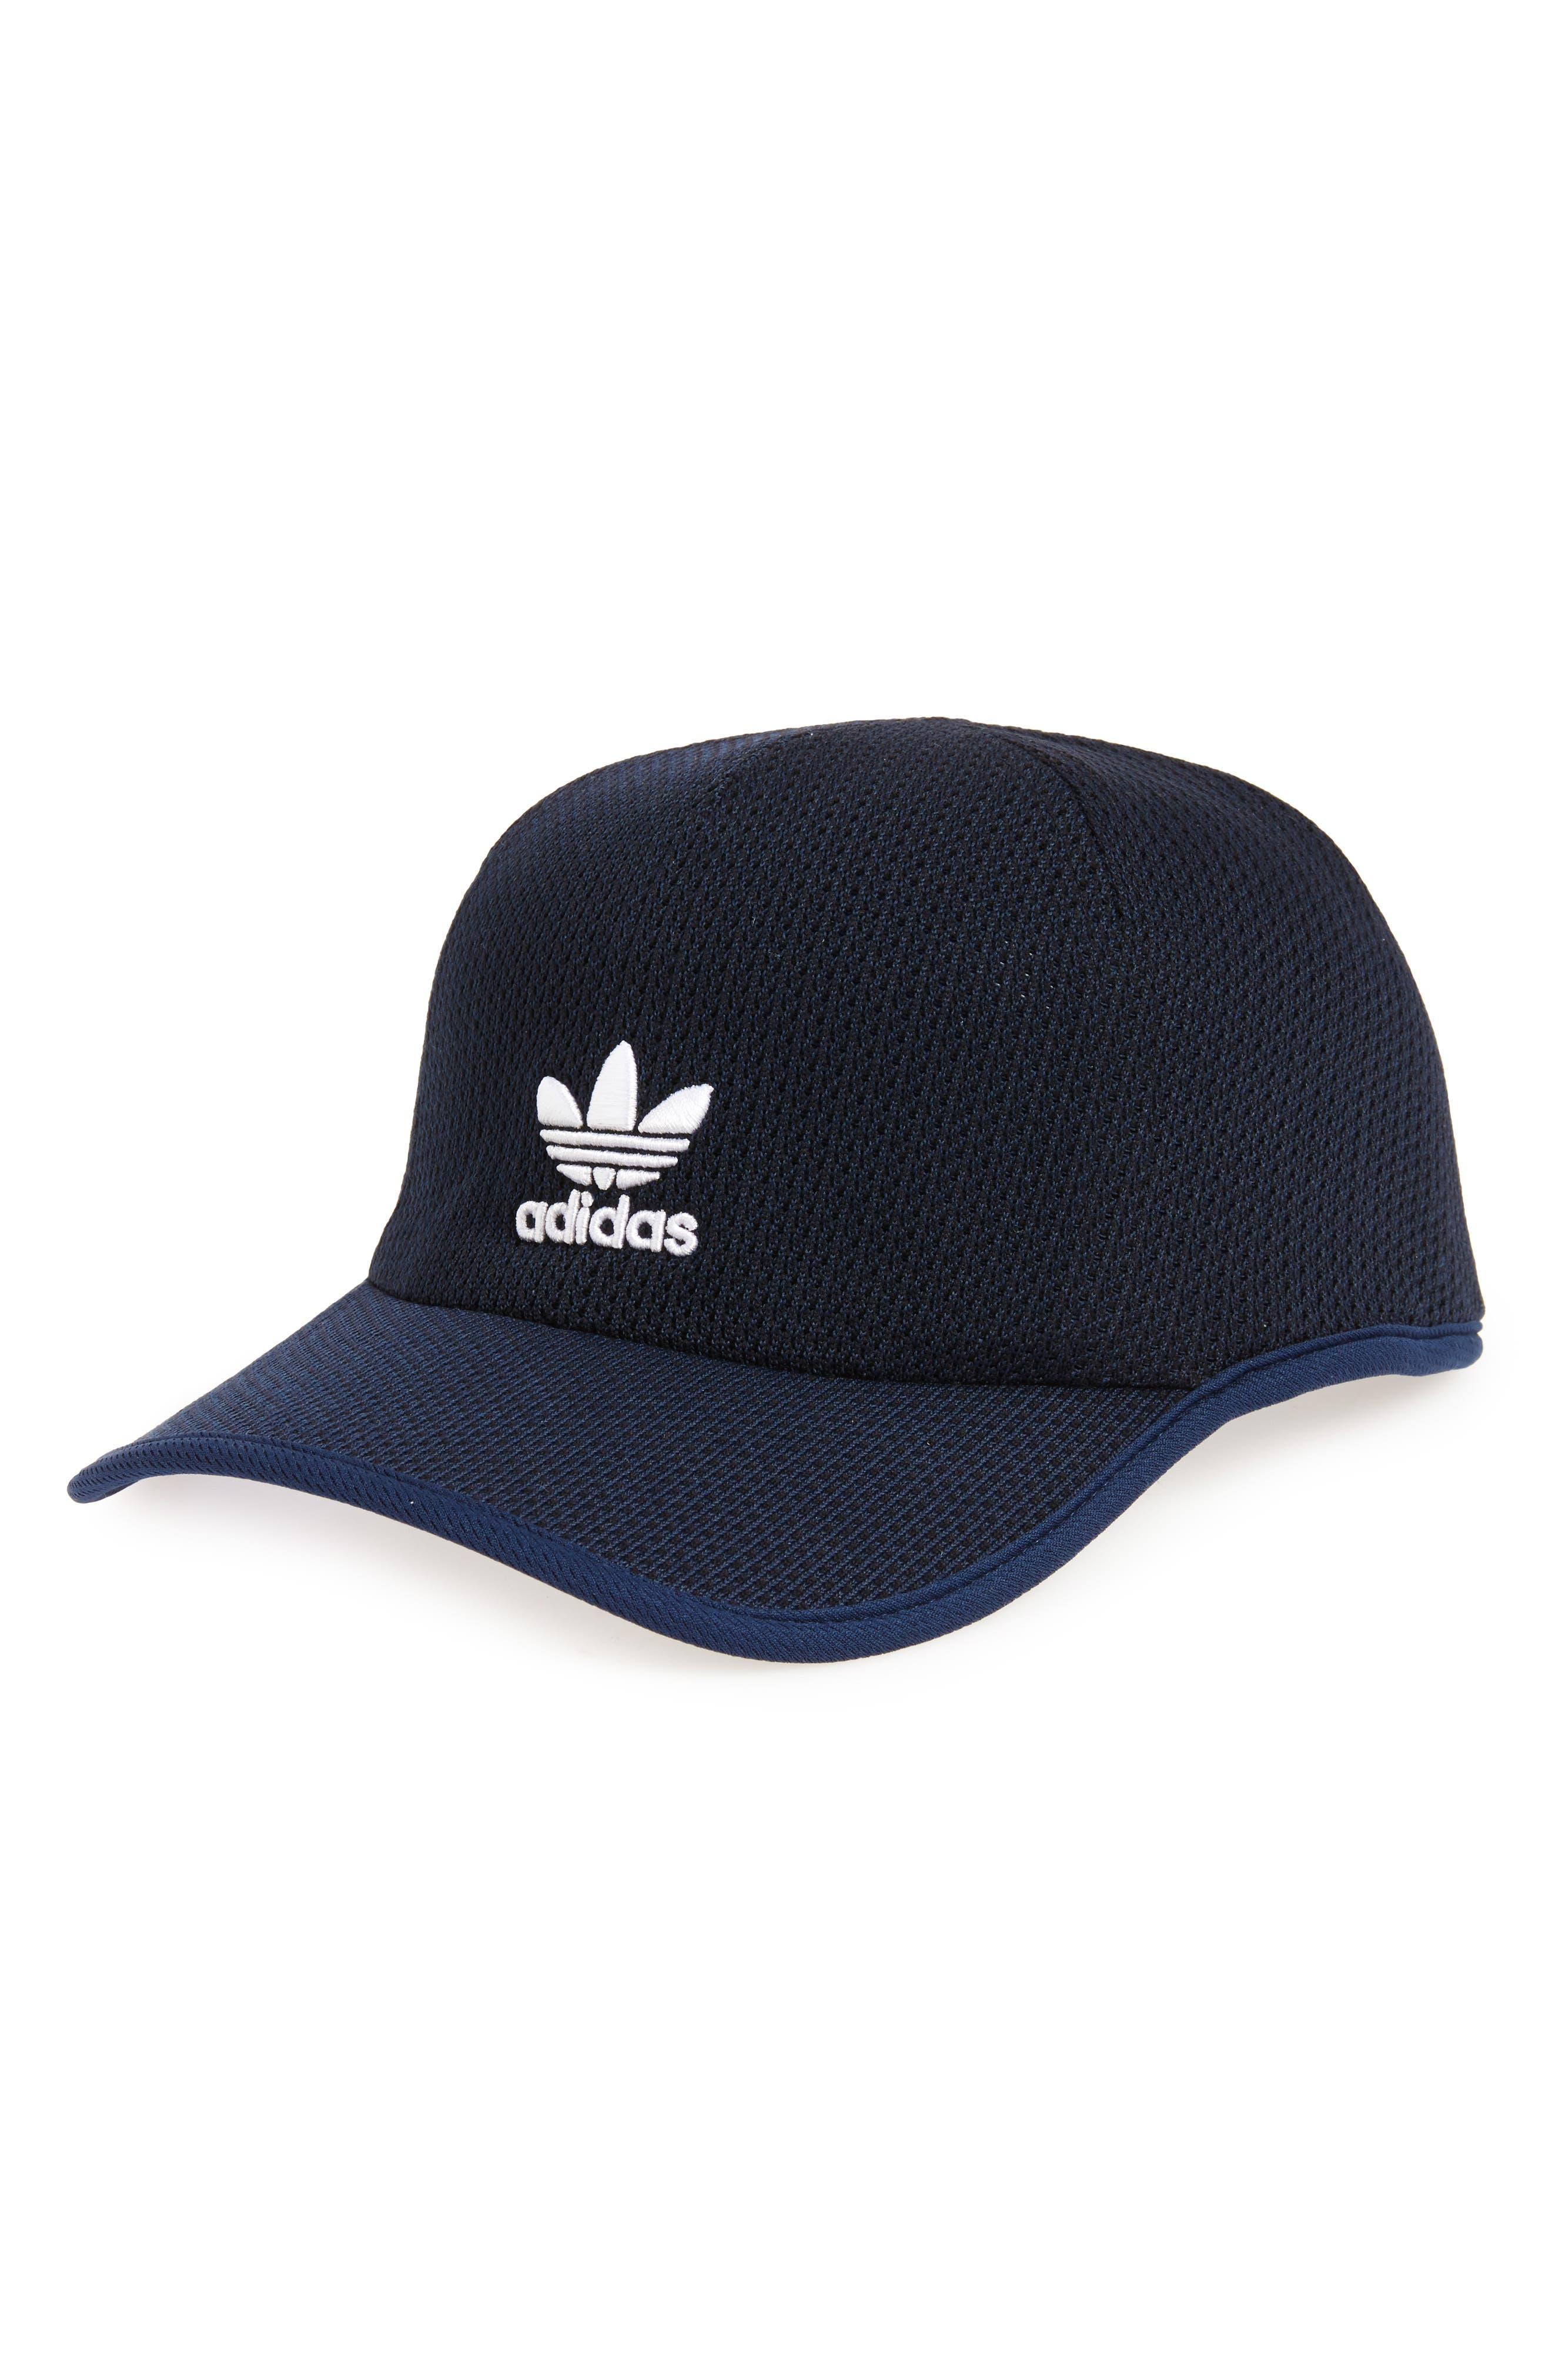 Alternate Image 1 Selected - adidas Originals Prime Baseball Cap